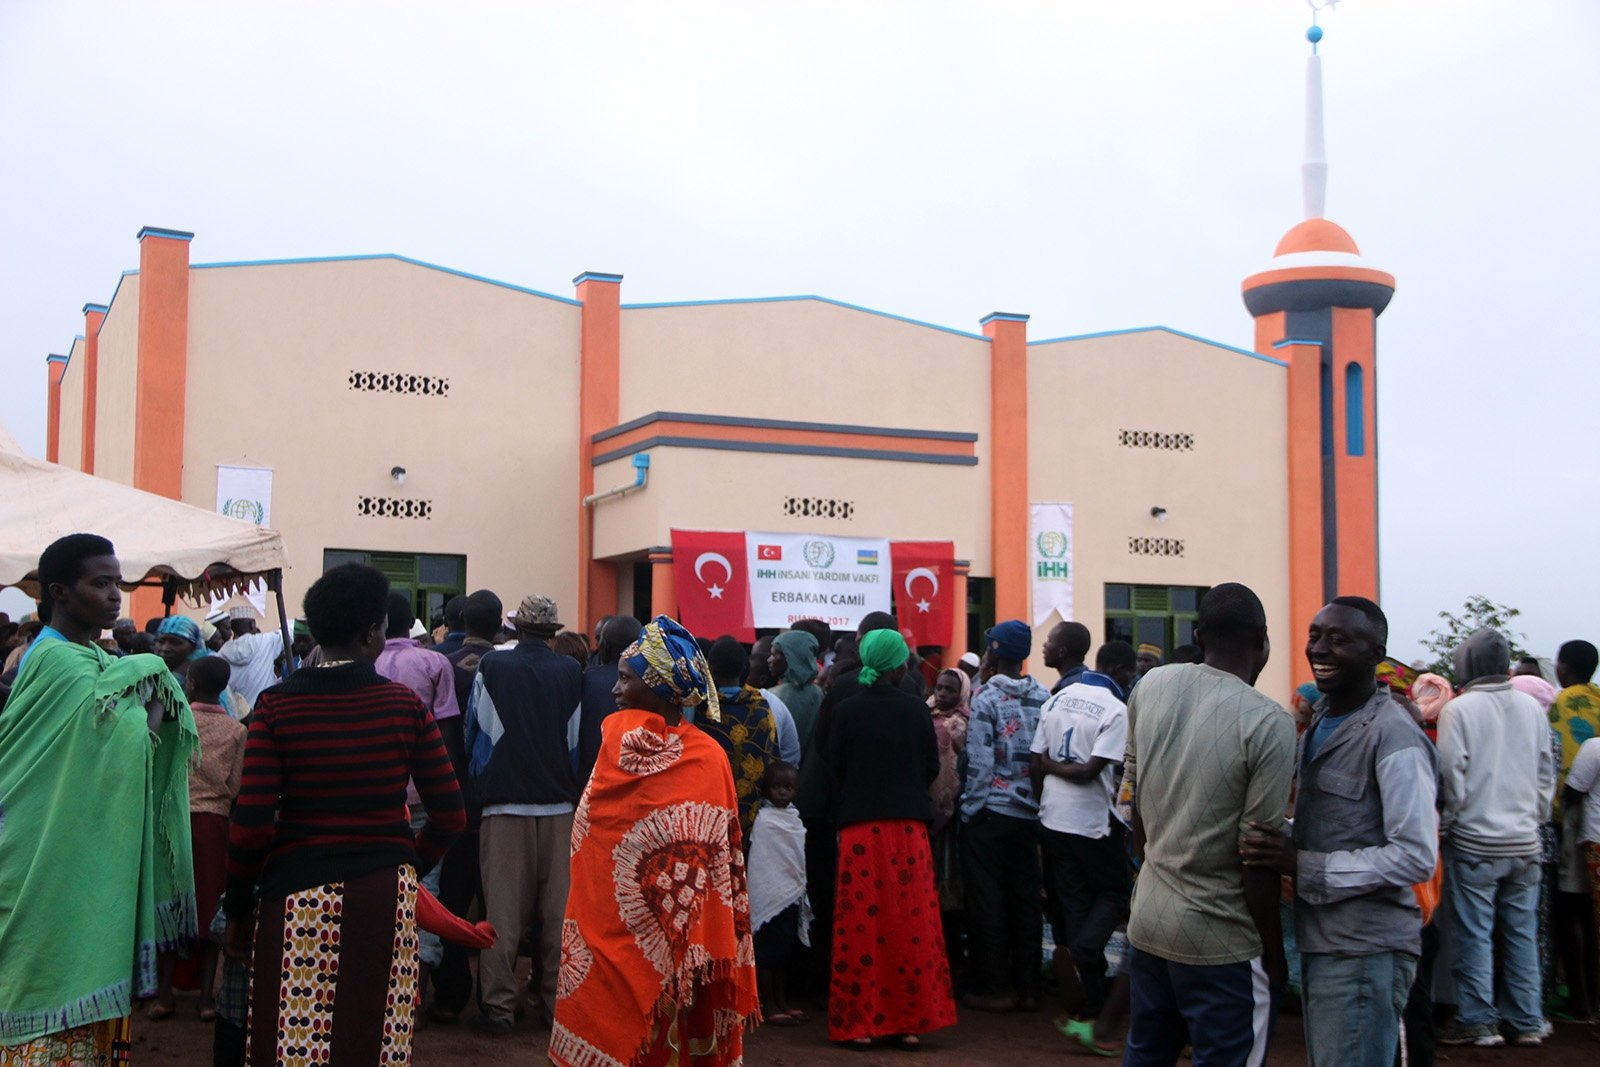 People are seen at an opening of mosque built by Turkey's Humanitarian Relief Foundation (İHH) in Rwanda, April 12, 2017. (AA Photo)